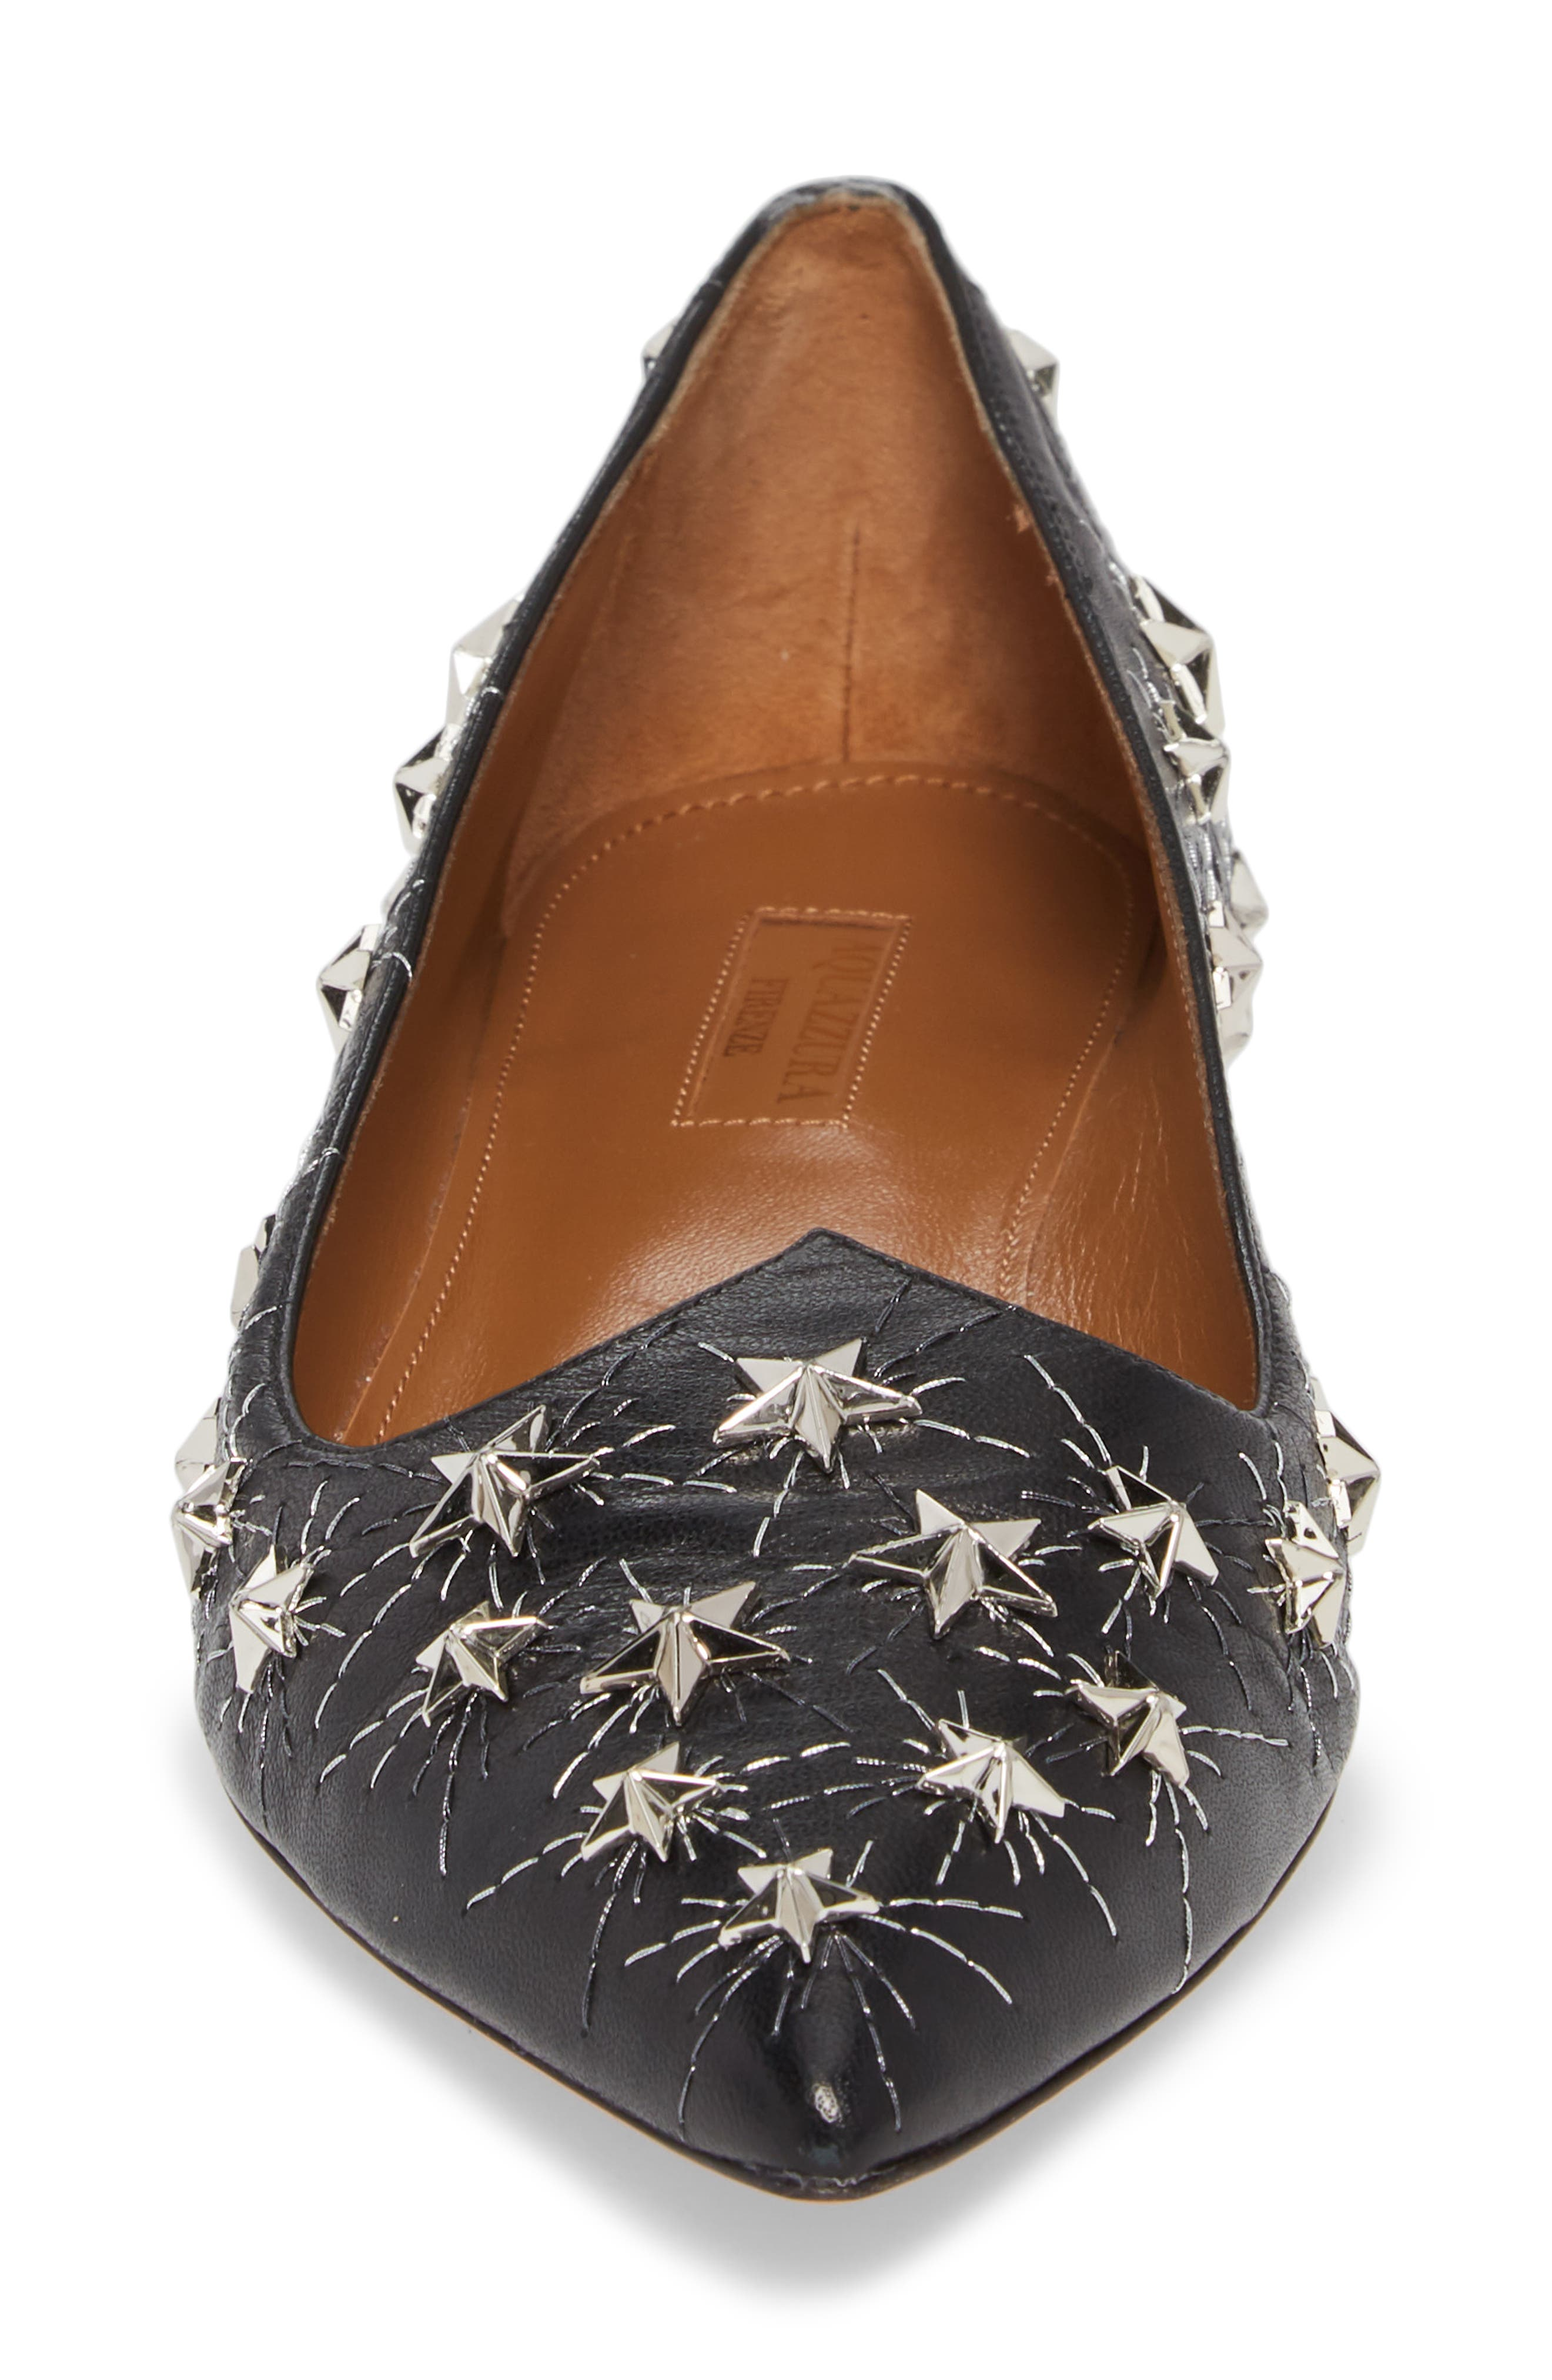 Cosmic Star Pointy Toe Flat,                             Alternate thumbnail 4, color,                             001